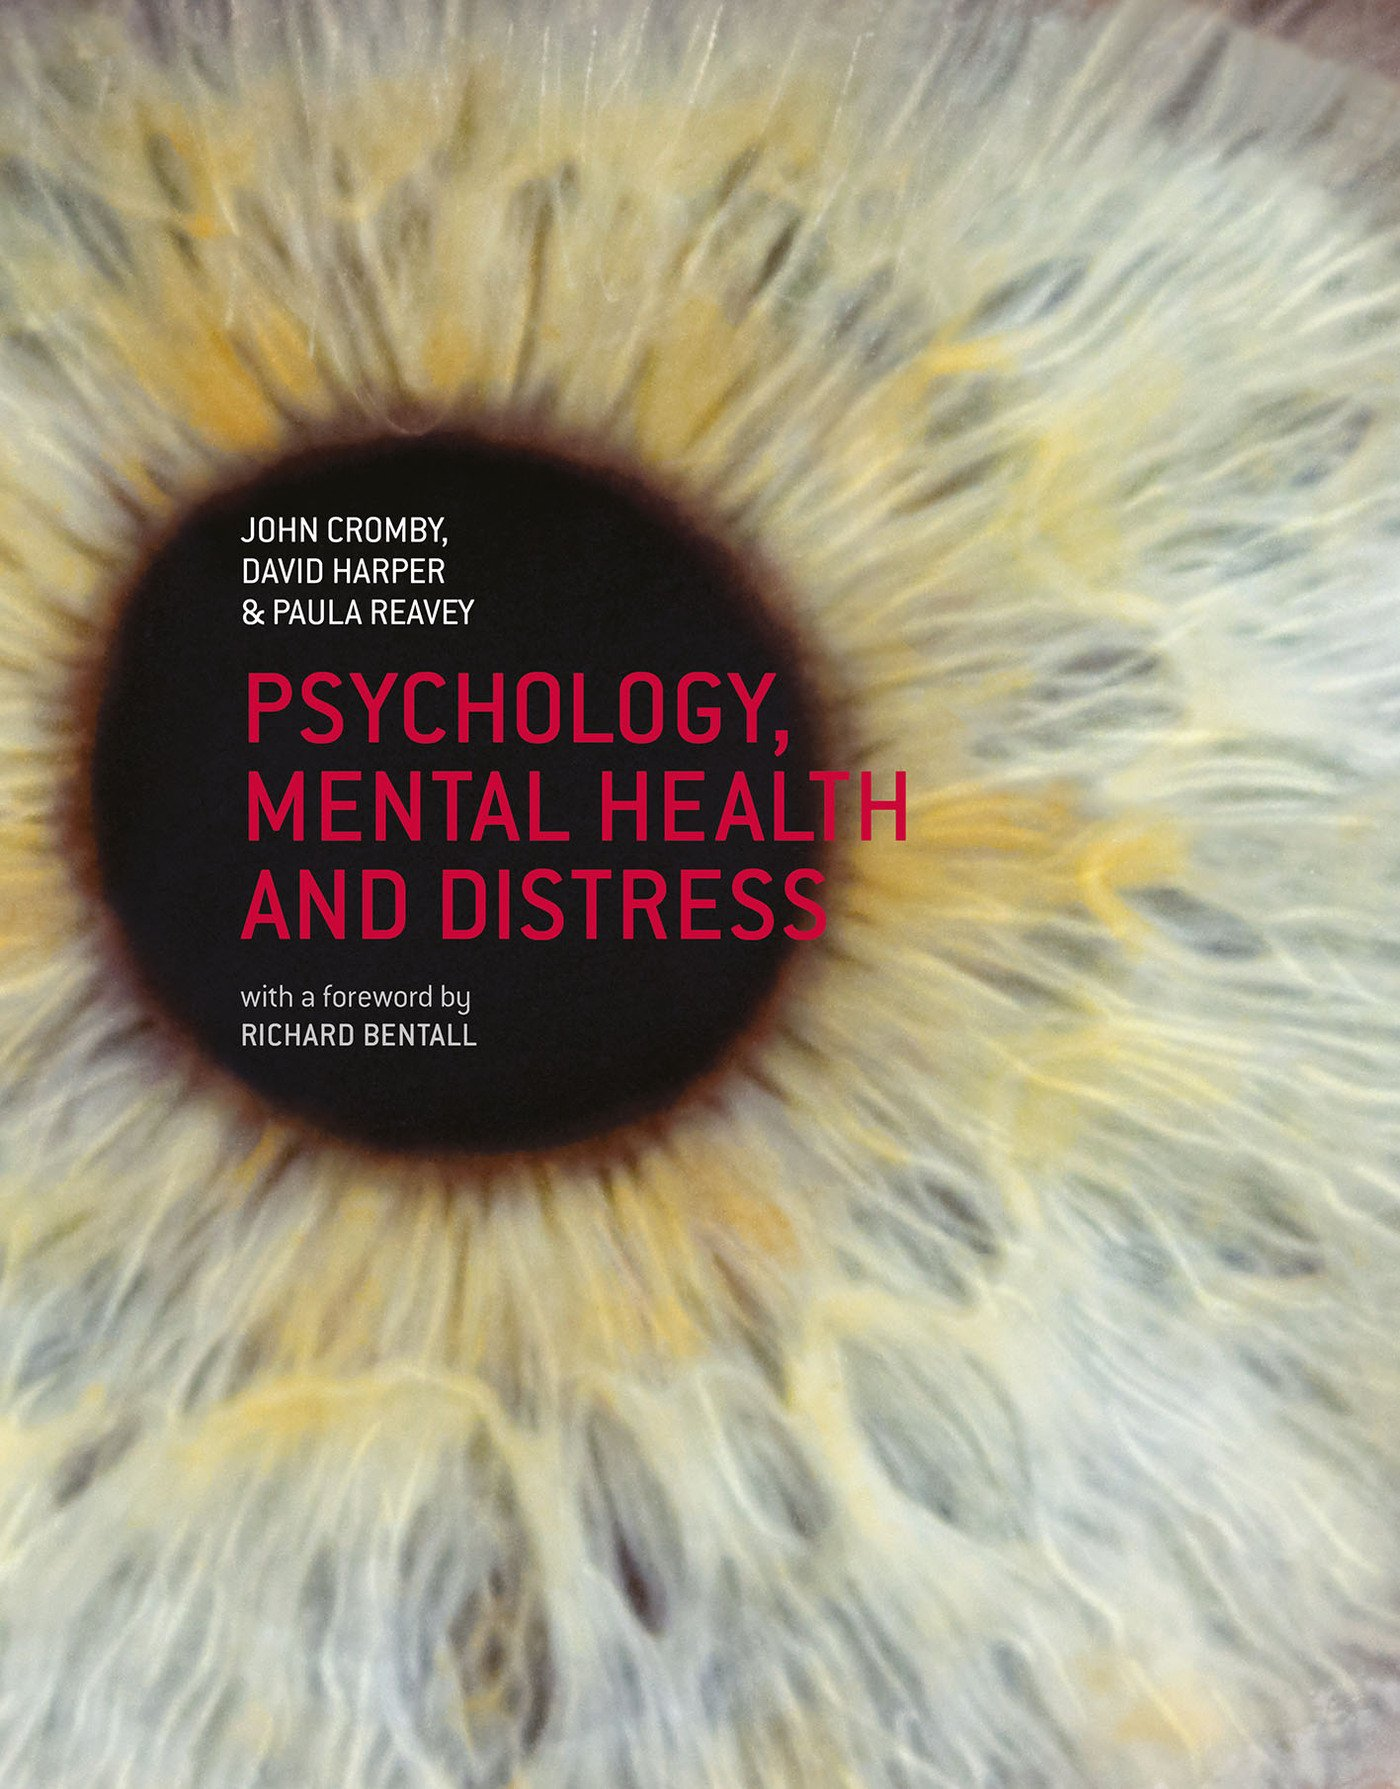 Cromby, John, David Harper and Paula Reavey.  Psychology, Mental Health and Distress